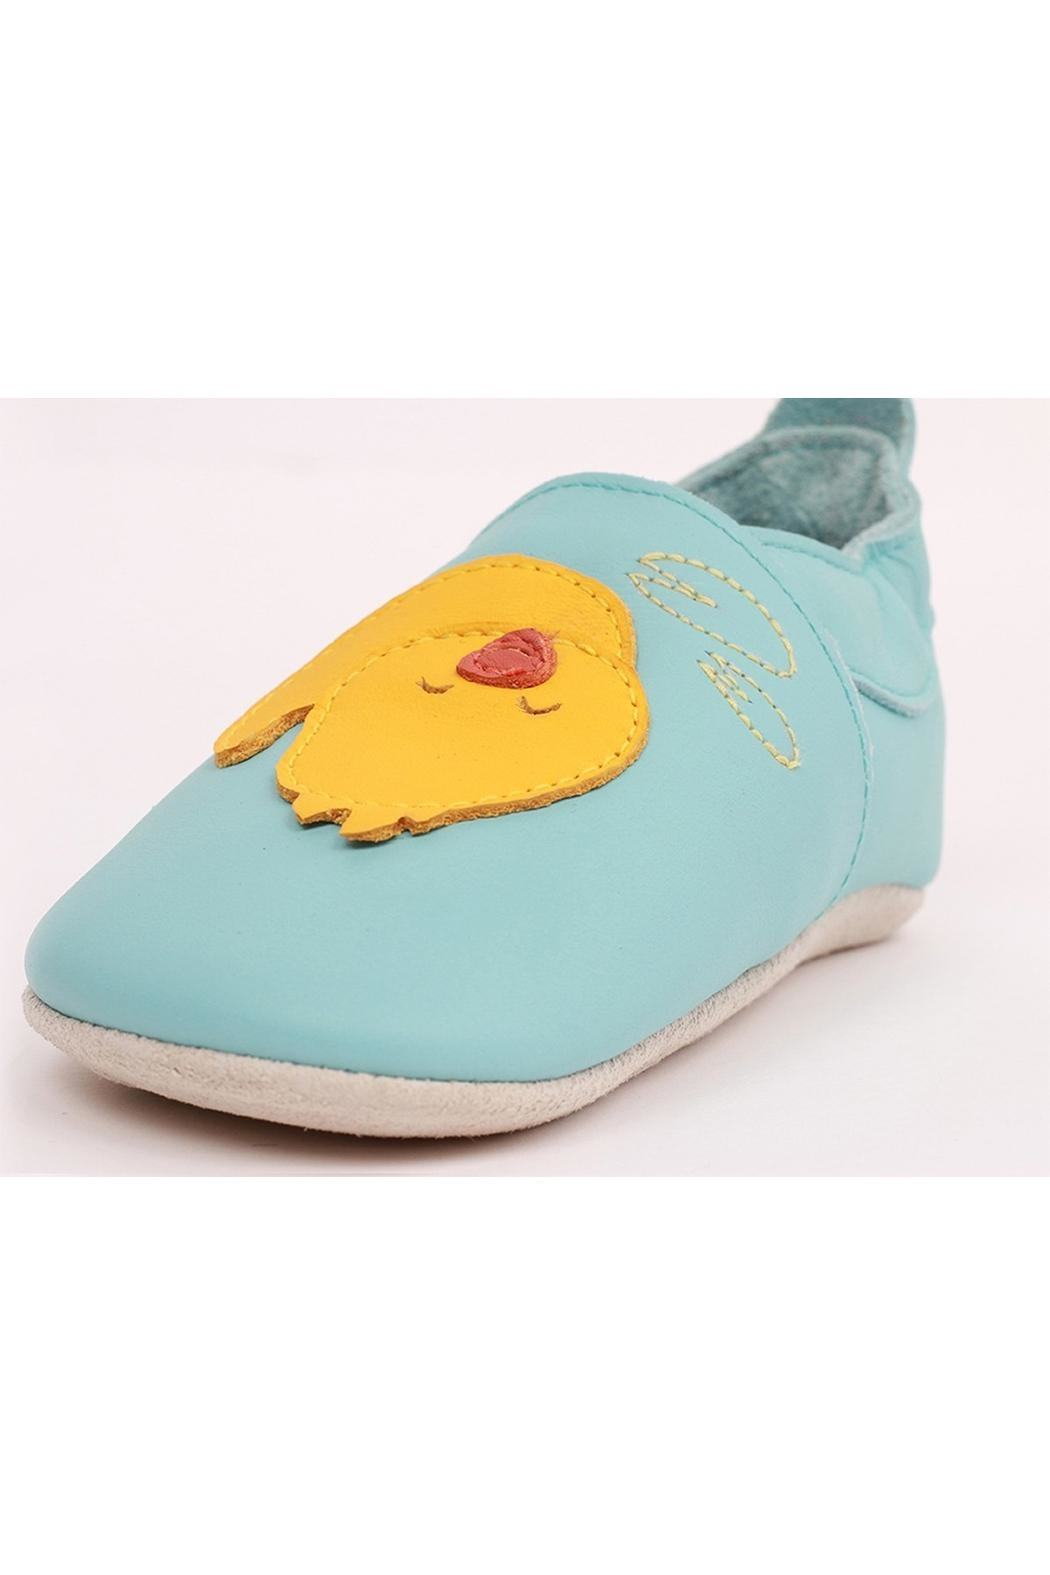 Bobux Aqua-Duckie Soft-Sole Slippers - Front Full Image